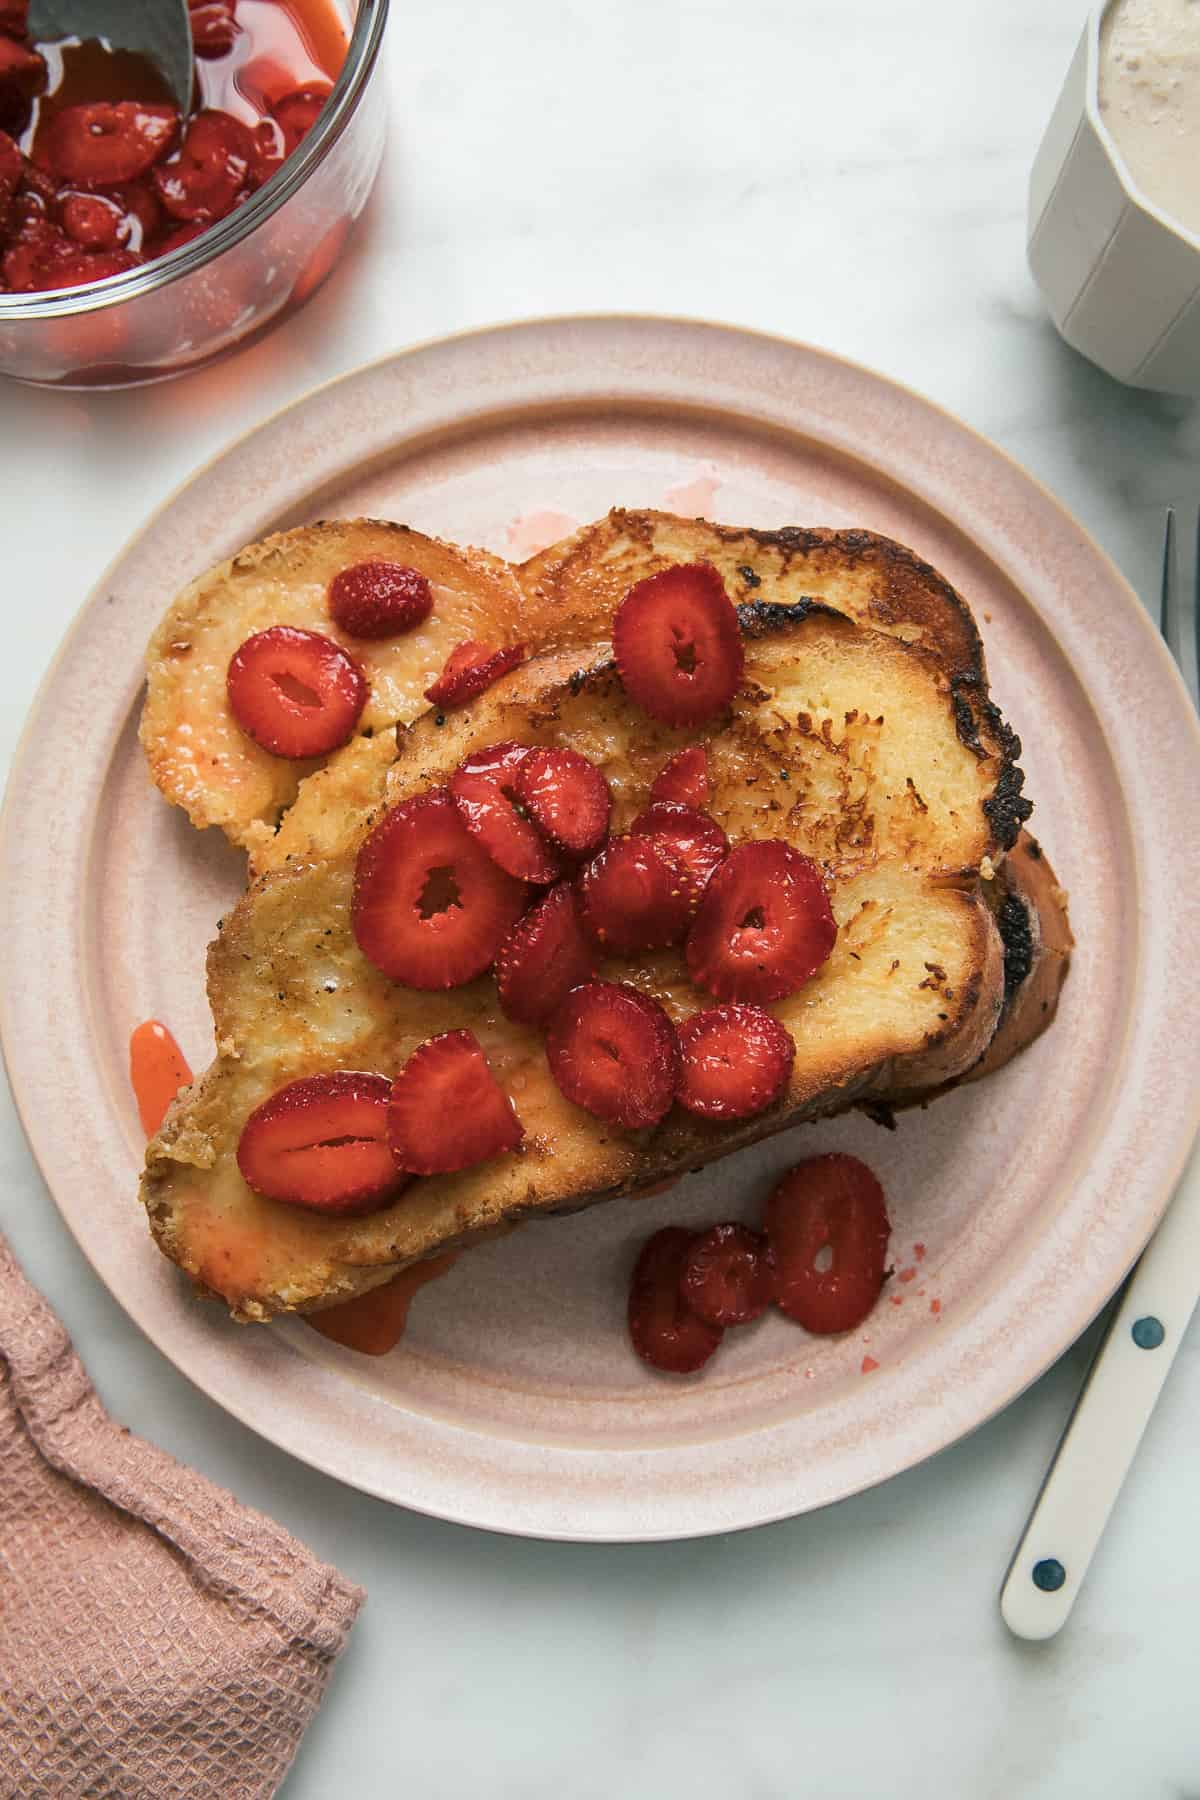 Custard French Toast with Macerated Strawberries